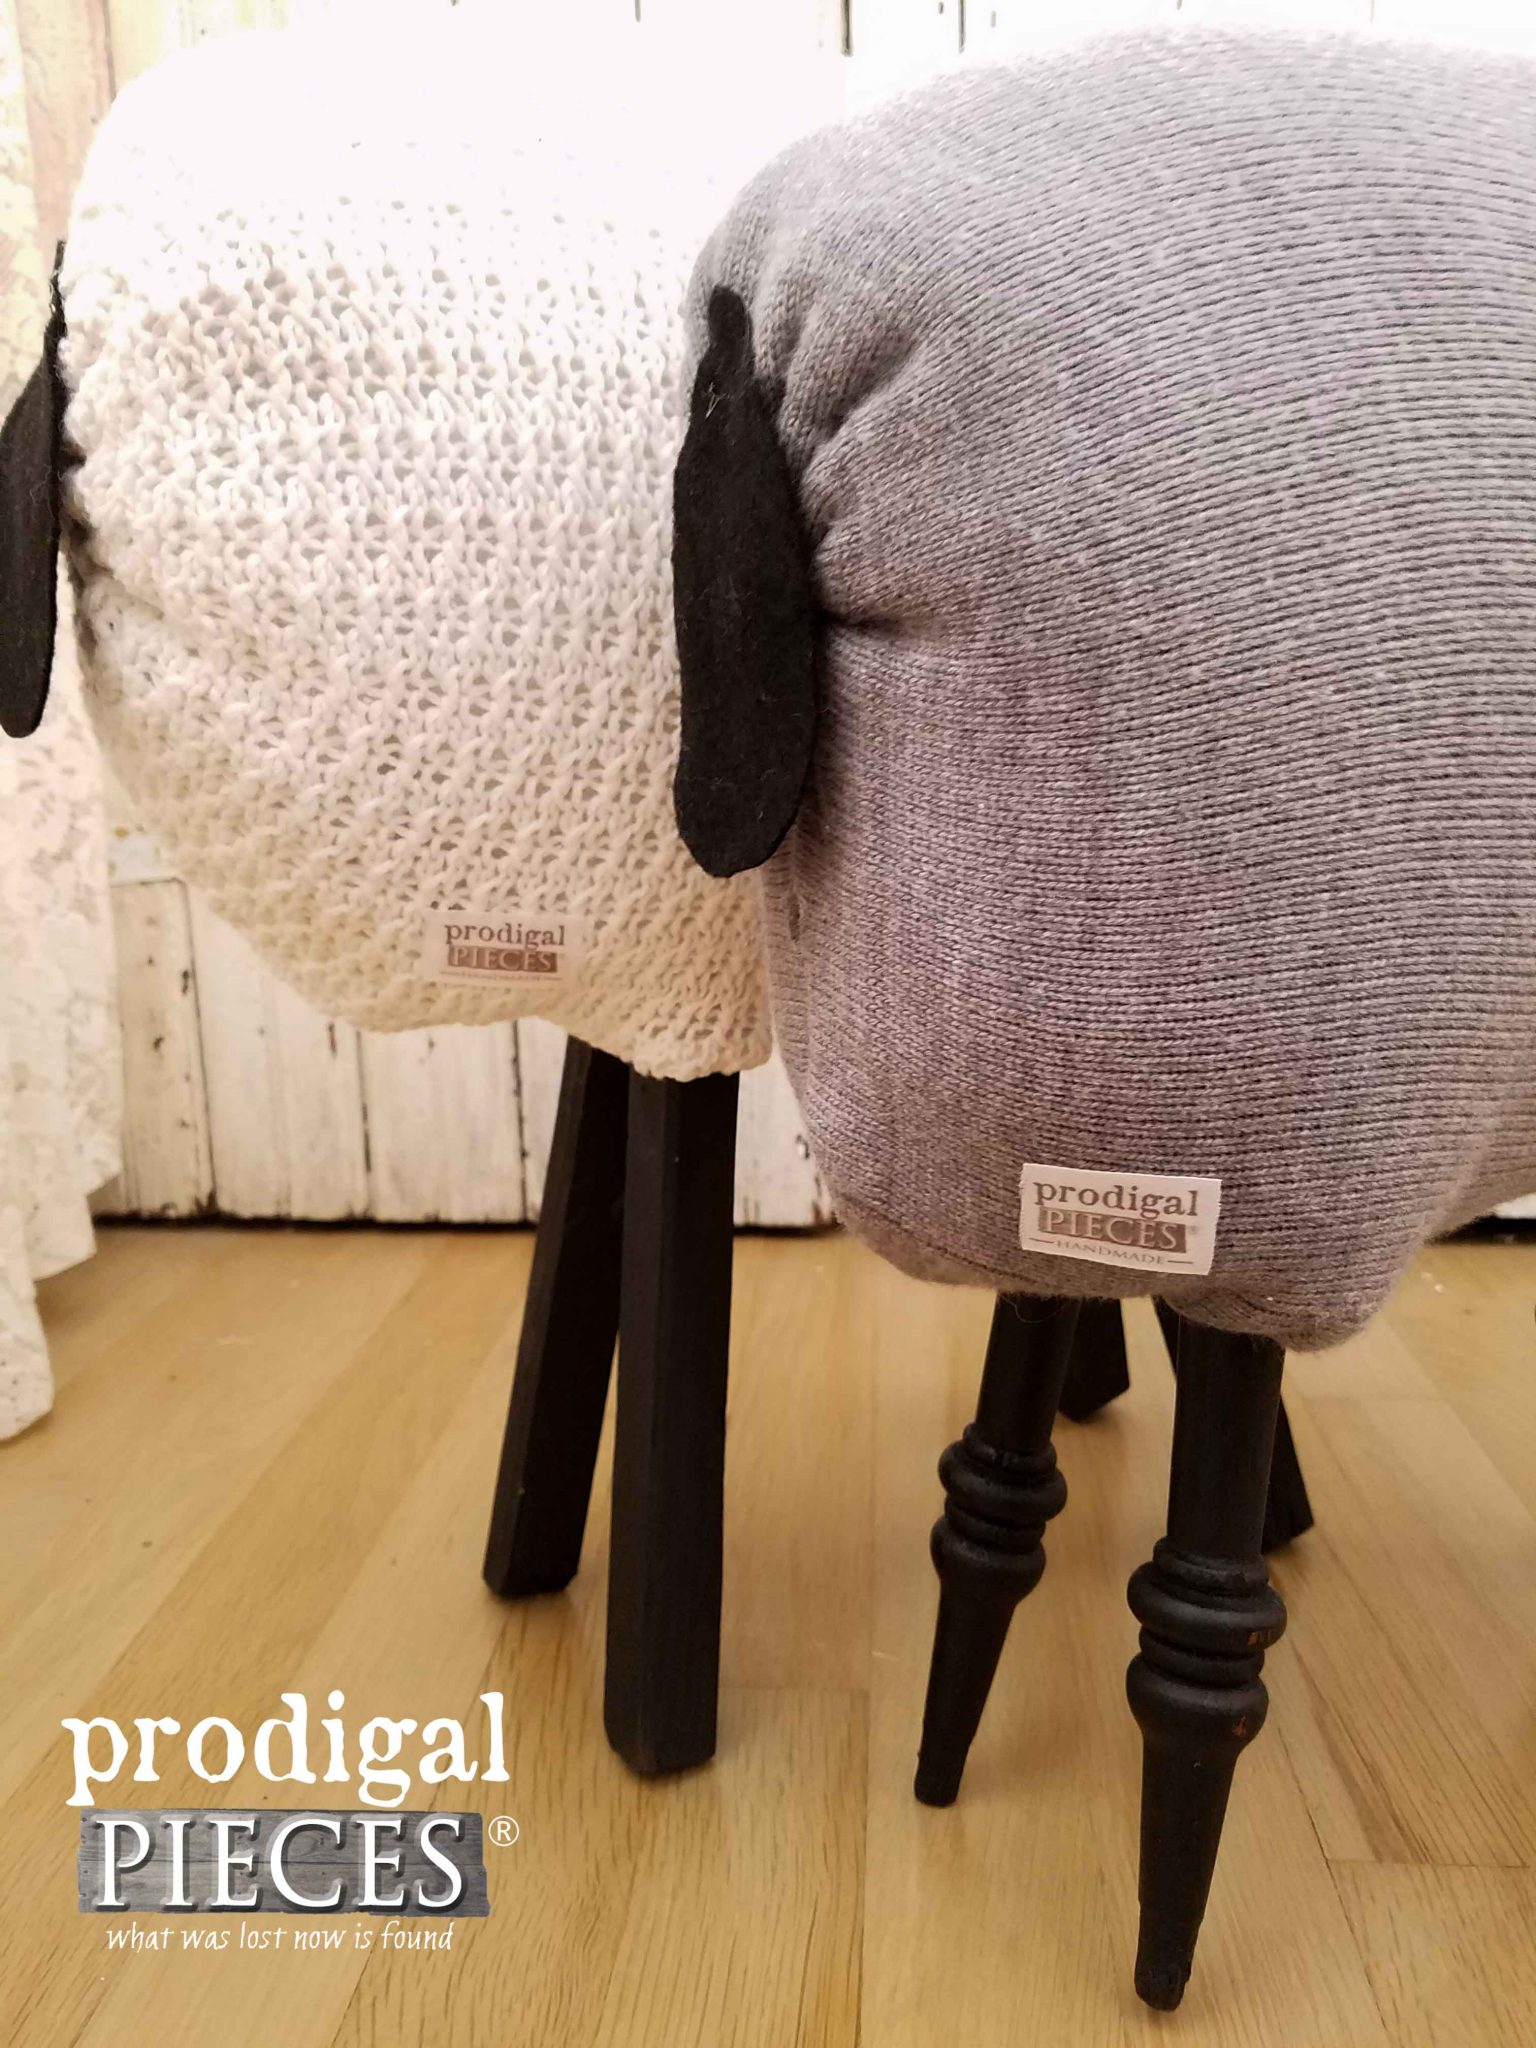 Prodigal Pieces Handmade Sheep | prodigalpieces.com